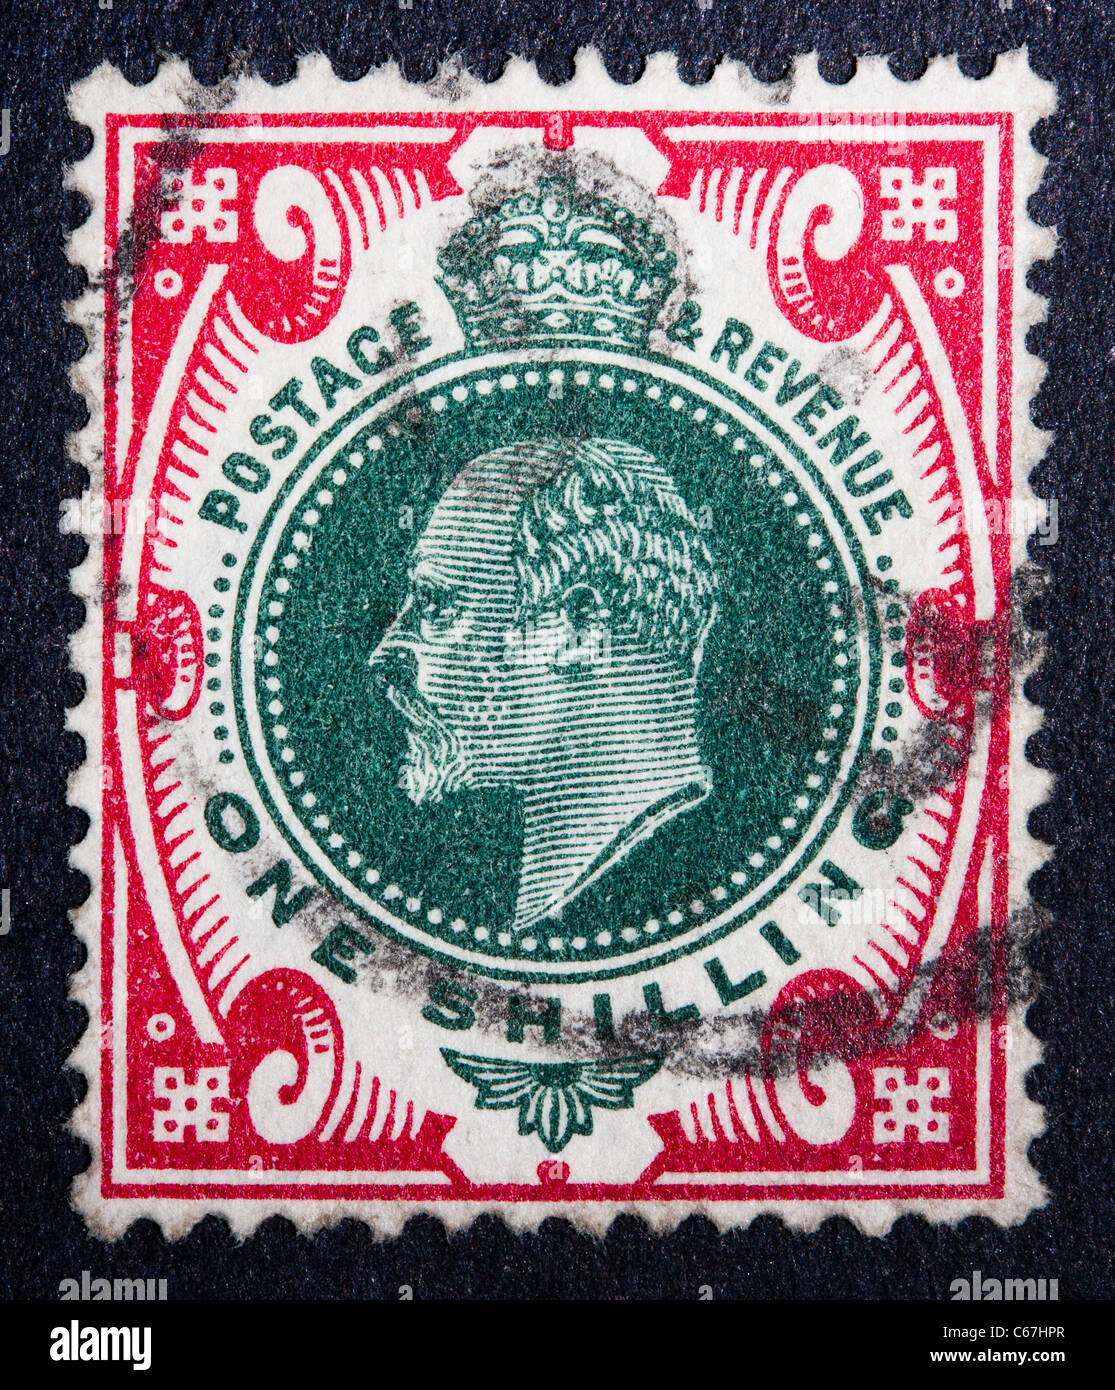 A postmarked 1s stamp from 1901, showing the profile of Edward the VII - Stock Image